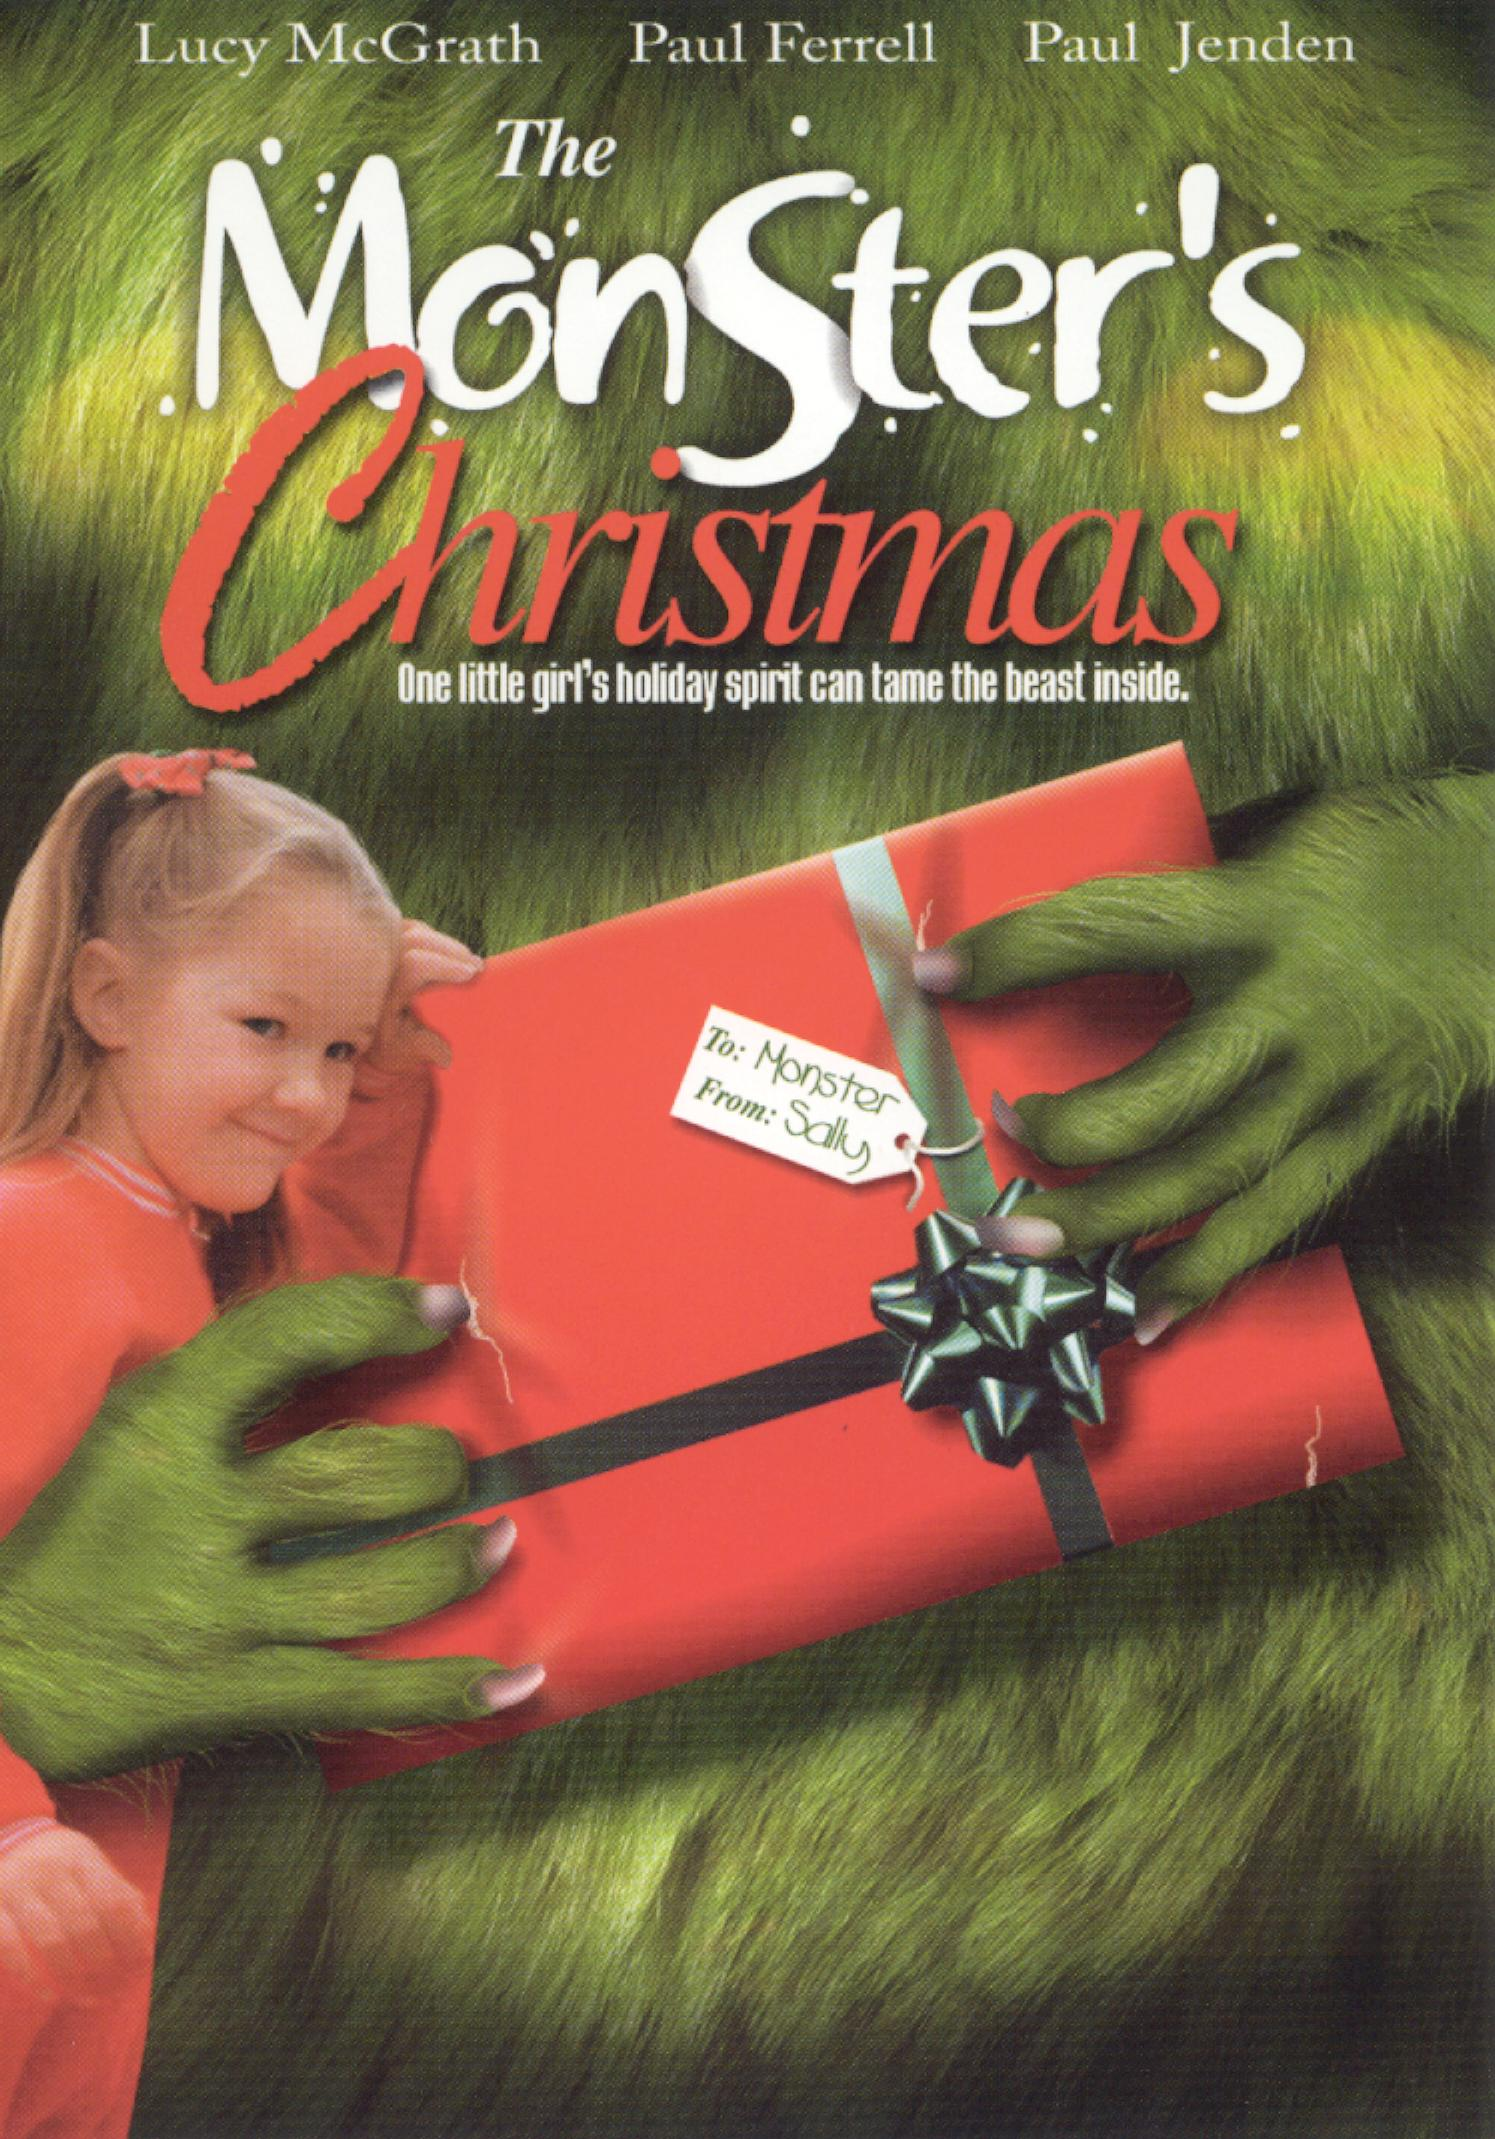 The Monster's Christmas